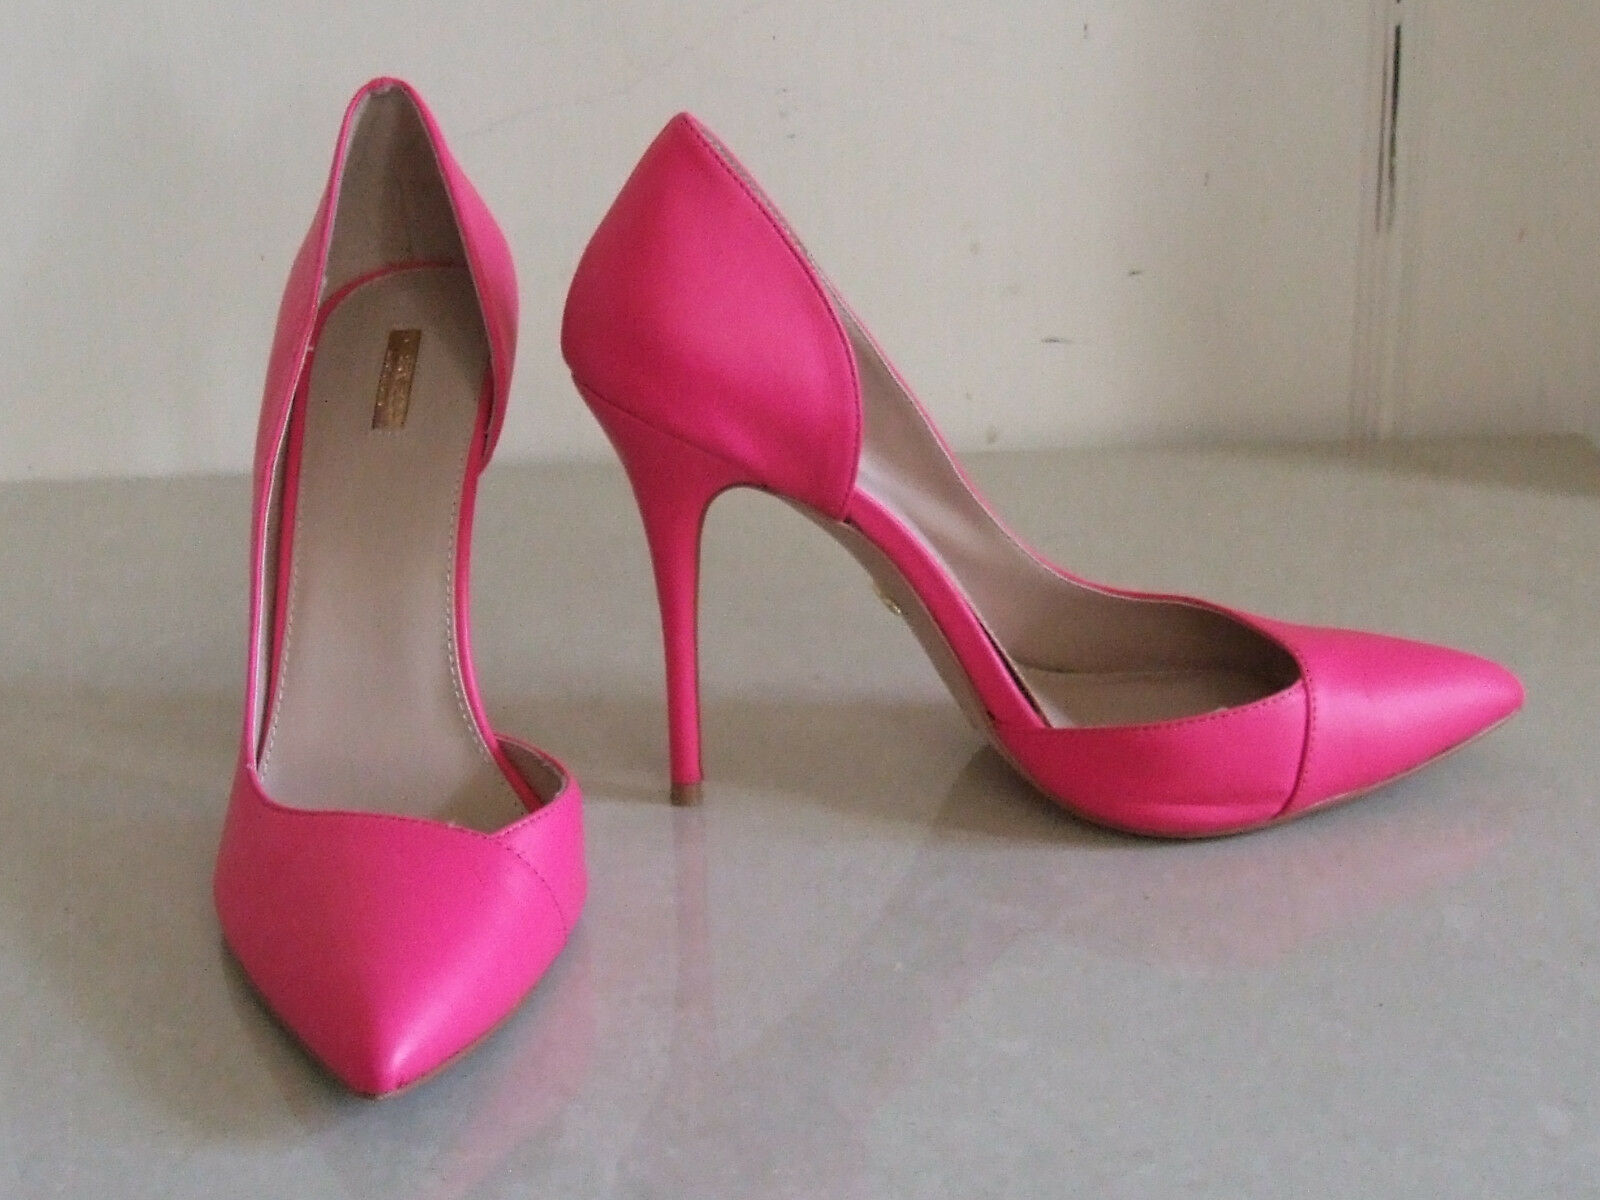 Carvella Glorious Stiletto High Heel schuhe Gorgeous Bubble Gum EU Rosa UK 7.5 EU Gum 41 f74a75